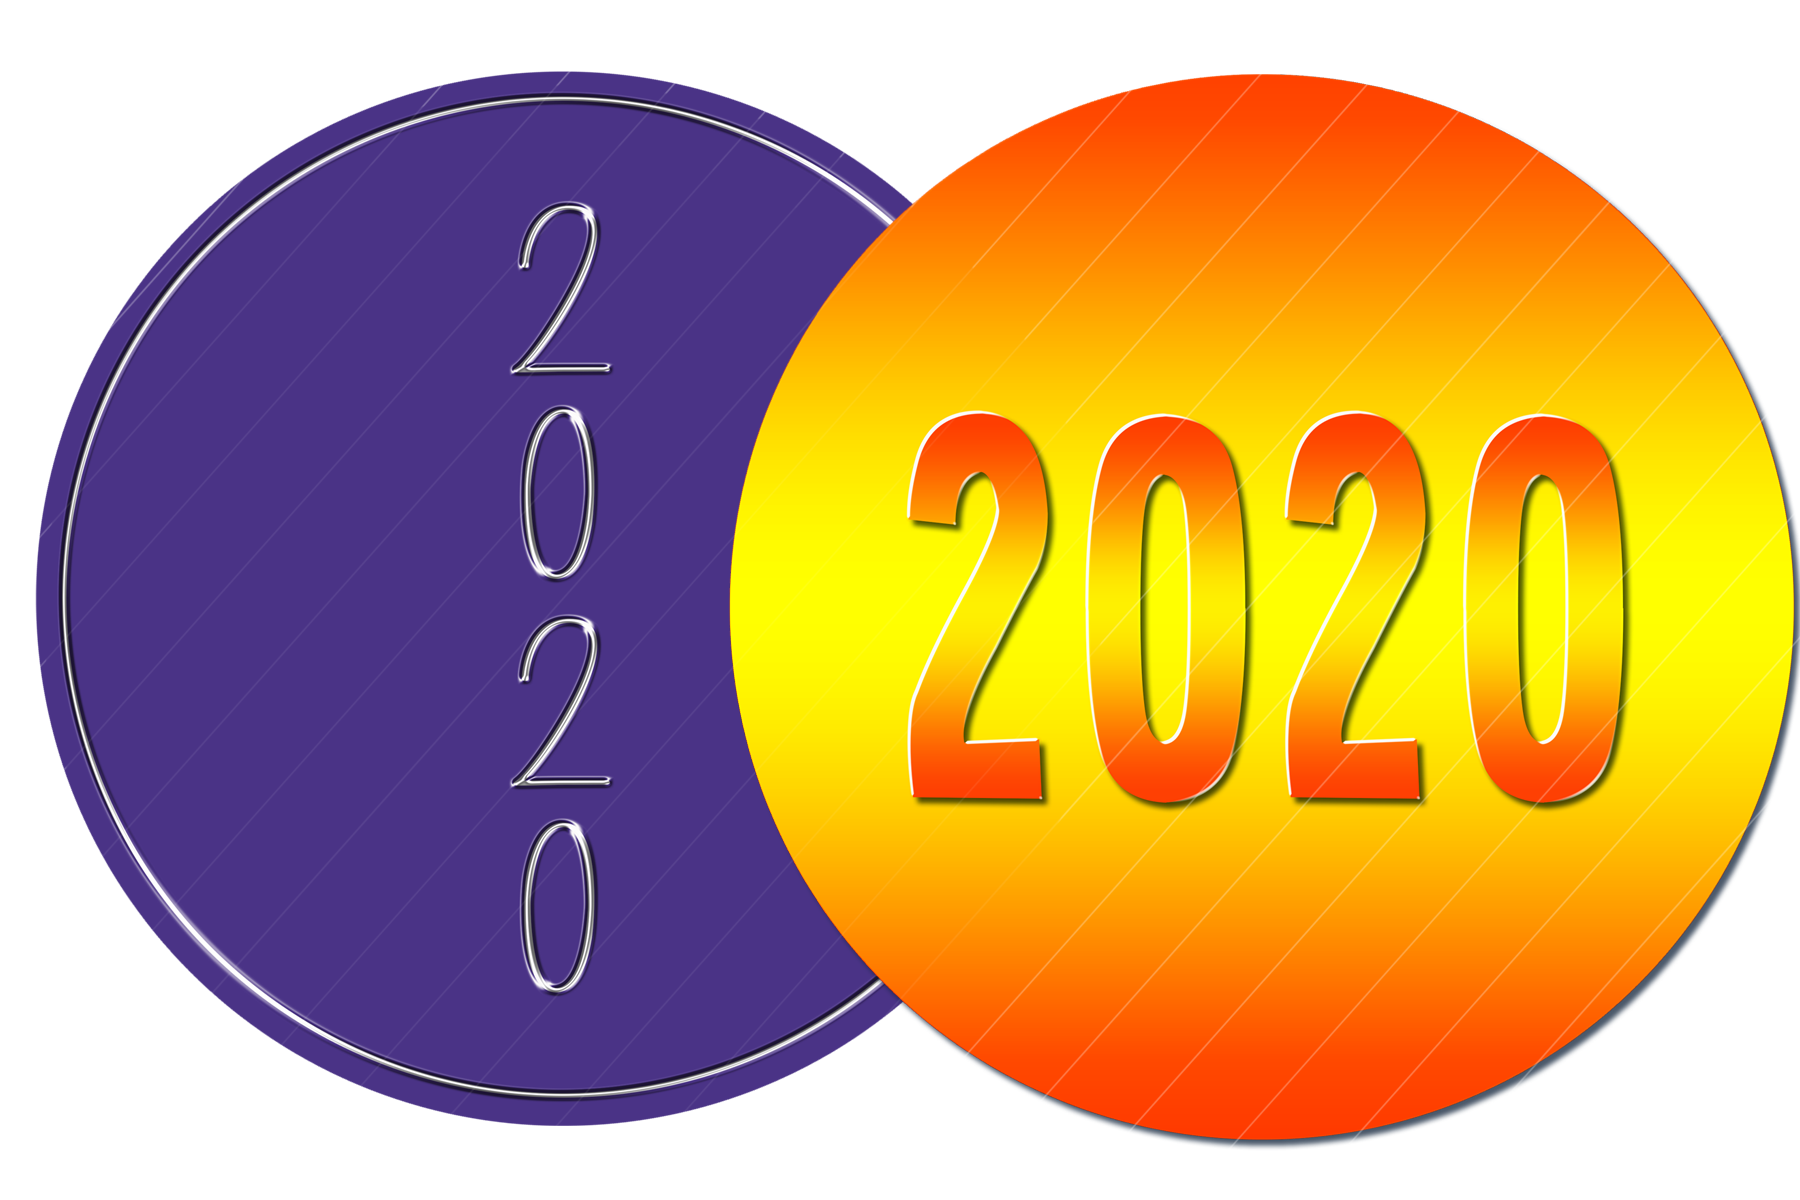 2020 New Year Designs for PRINTING, High Resolution example image 2